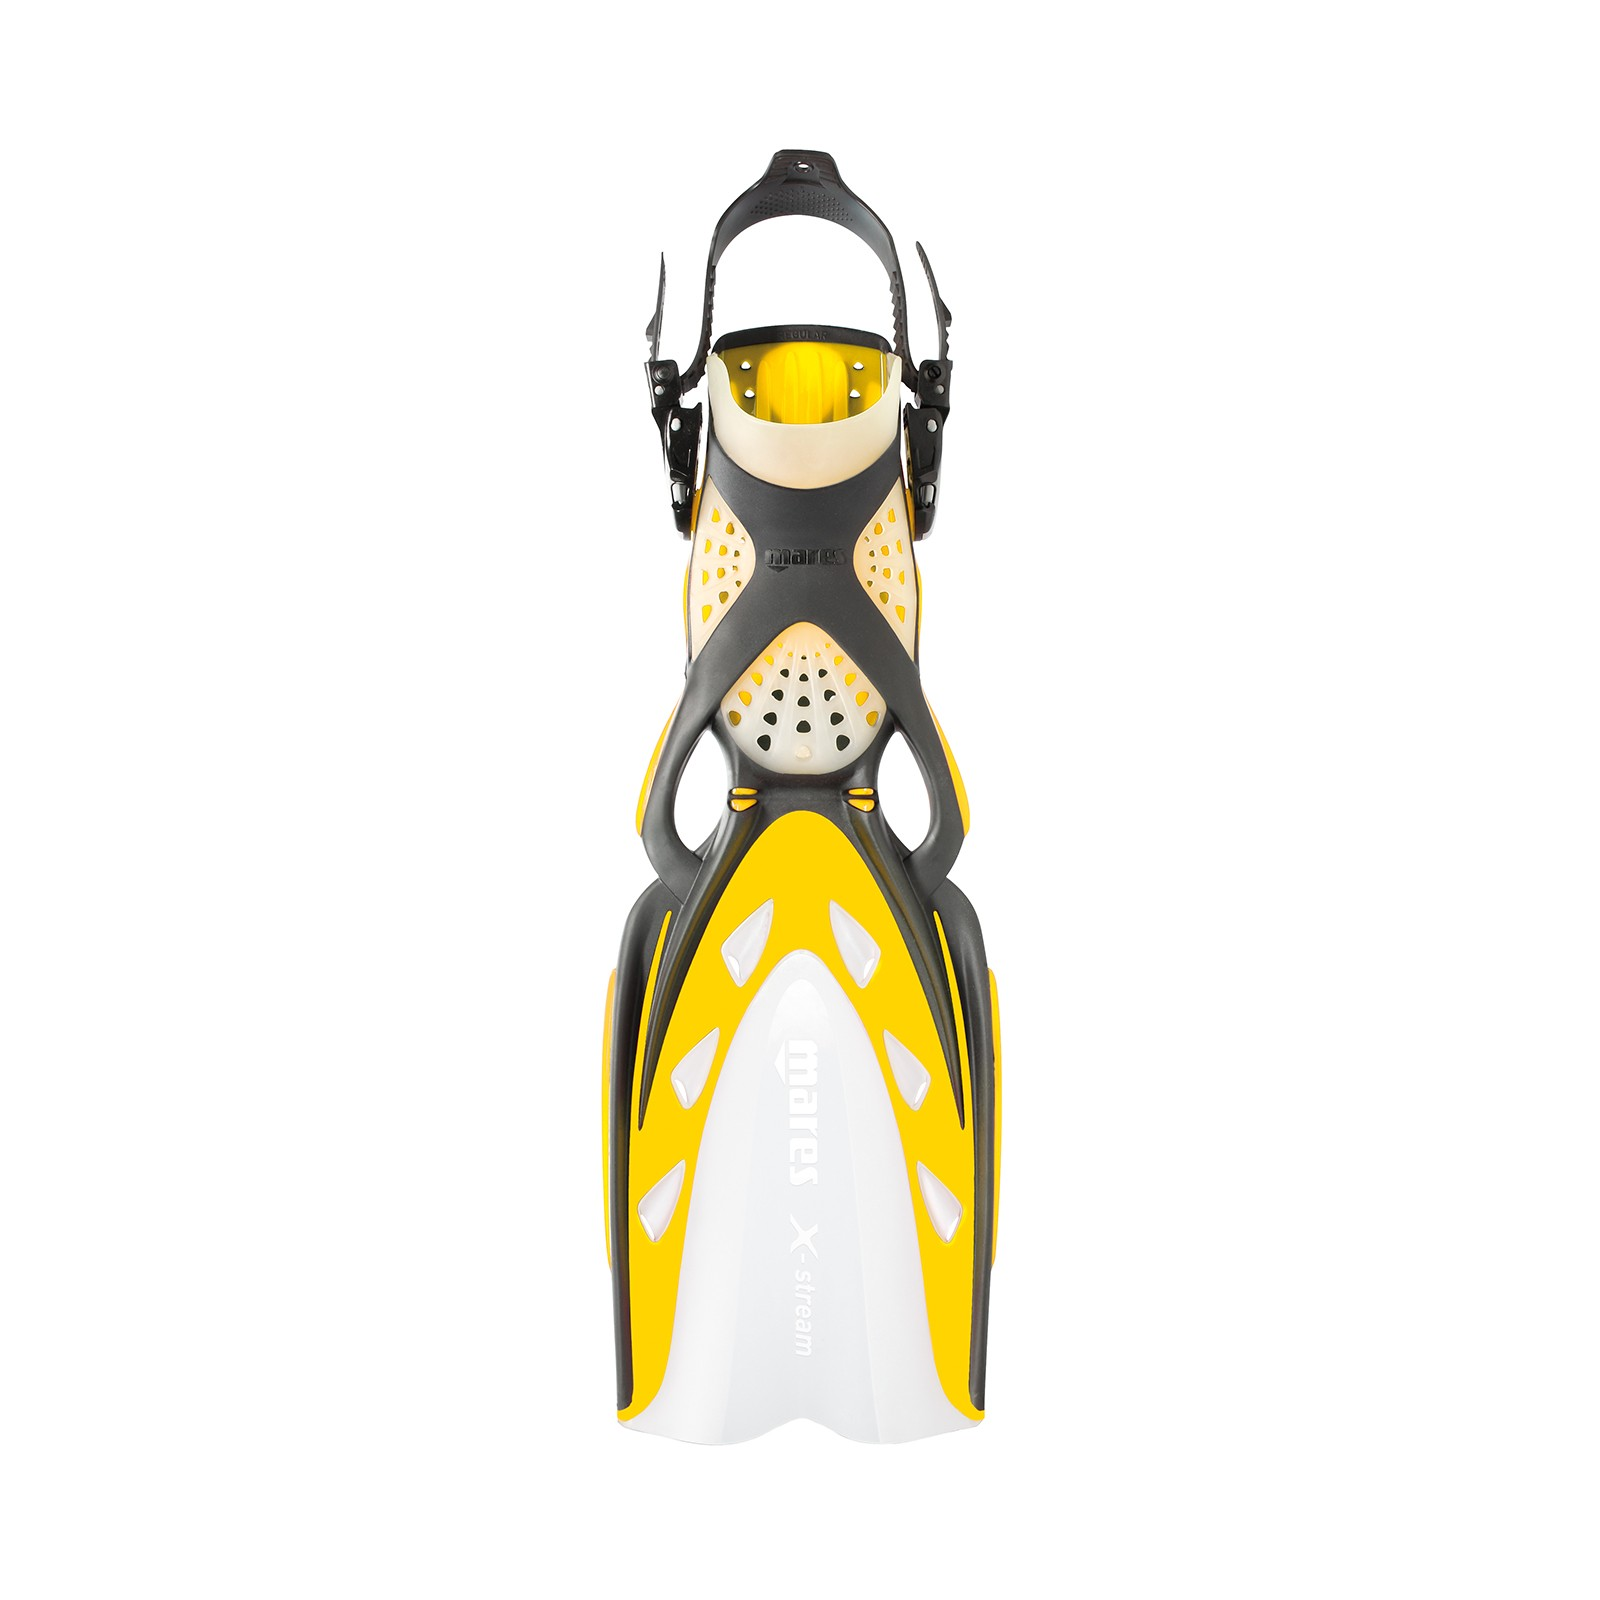 Mares X-Stream Scuba Diving Fins